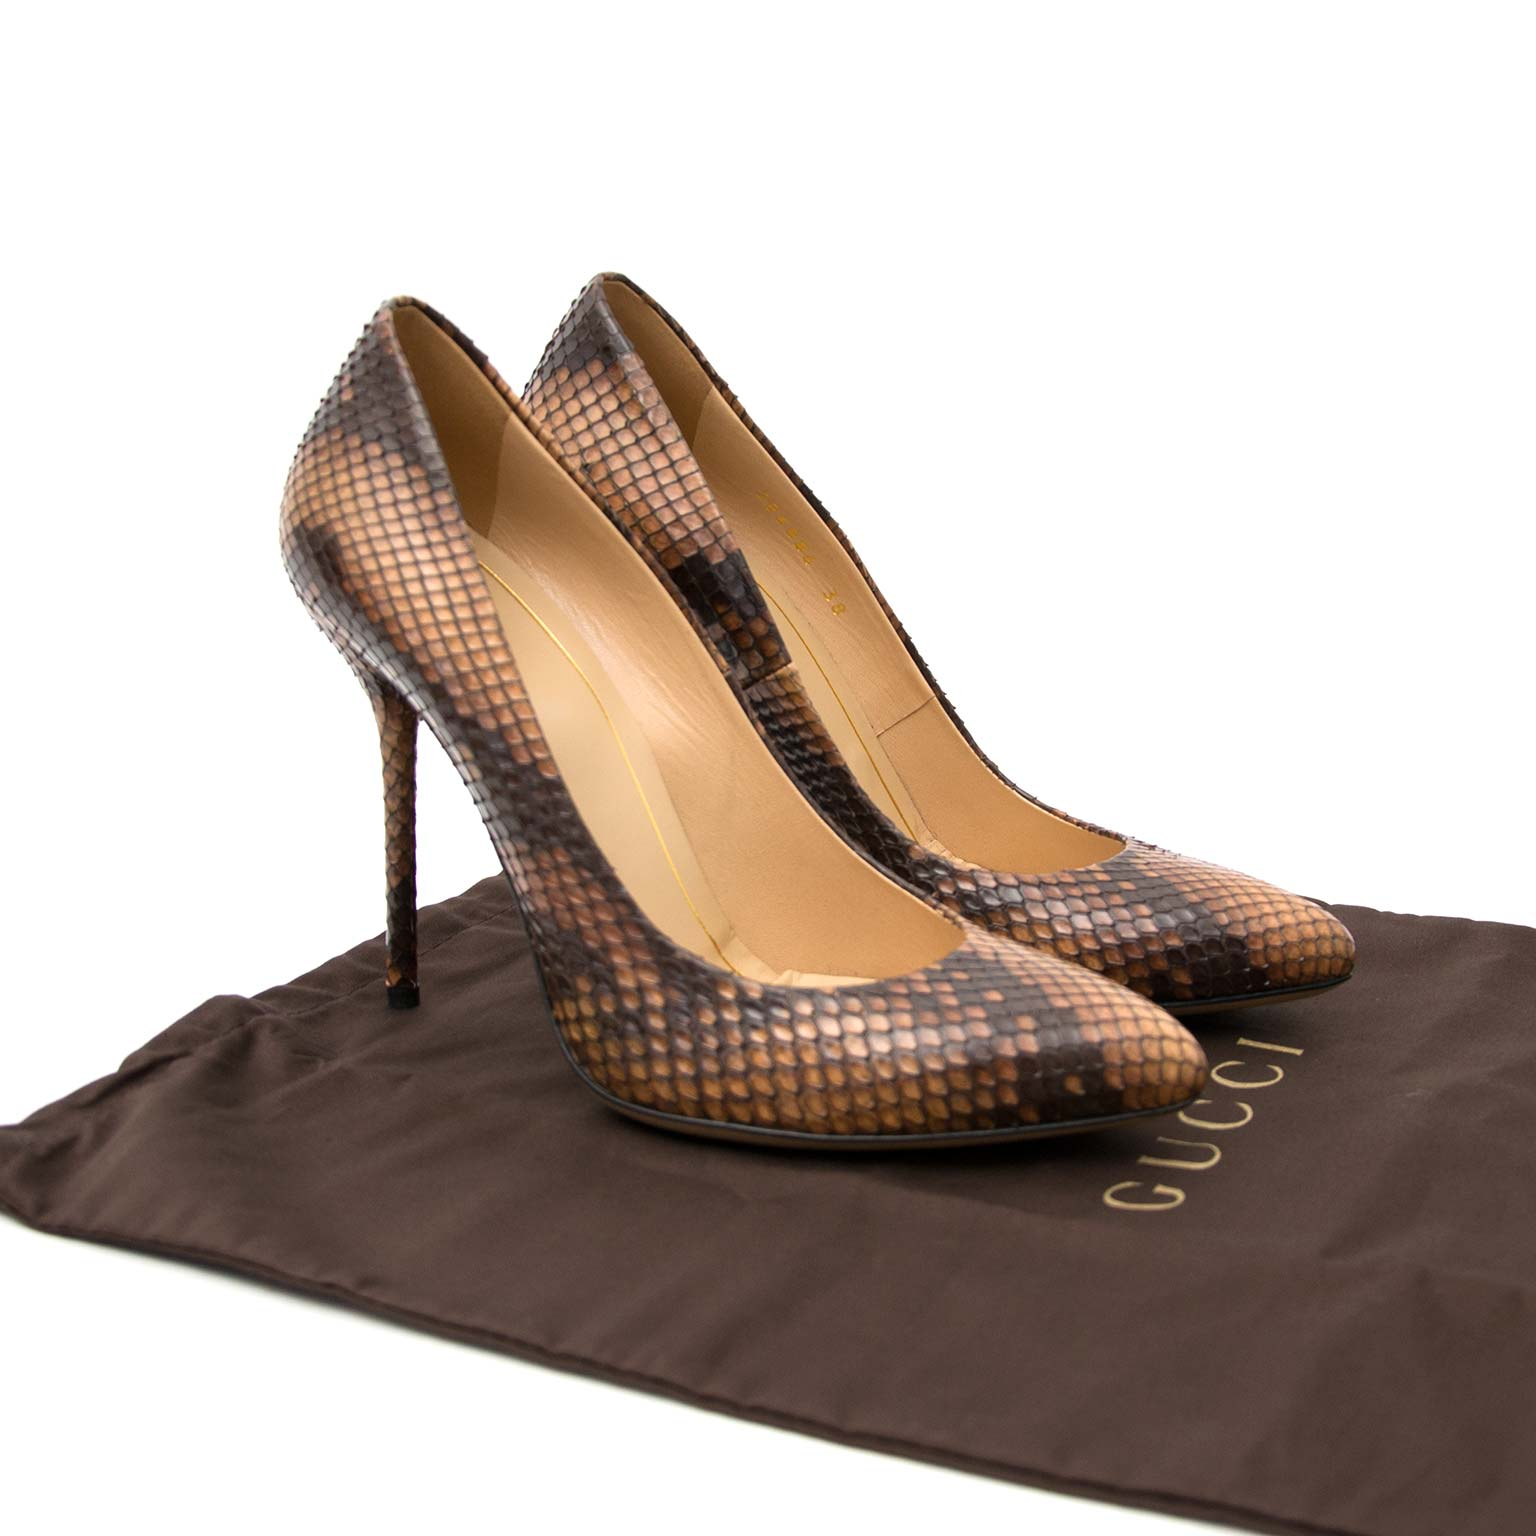 Gucci Python Pumps online at Labellov secondhand luxury